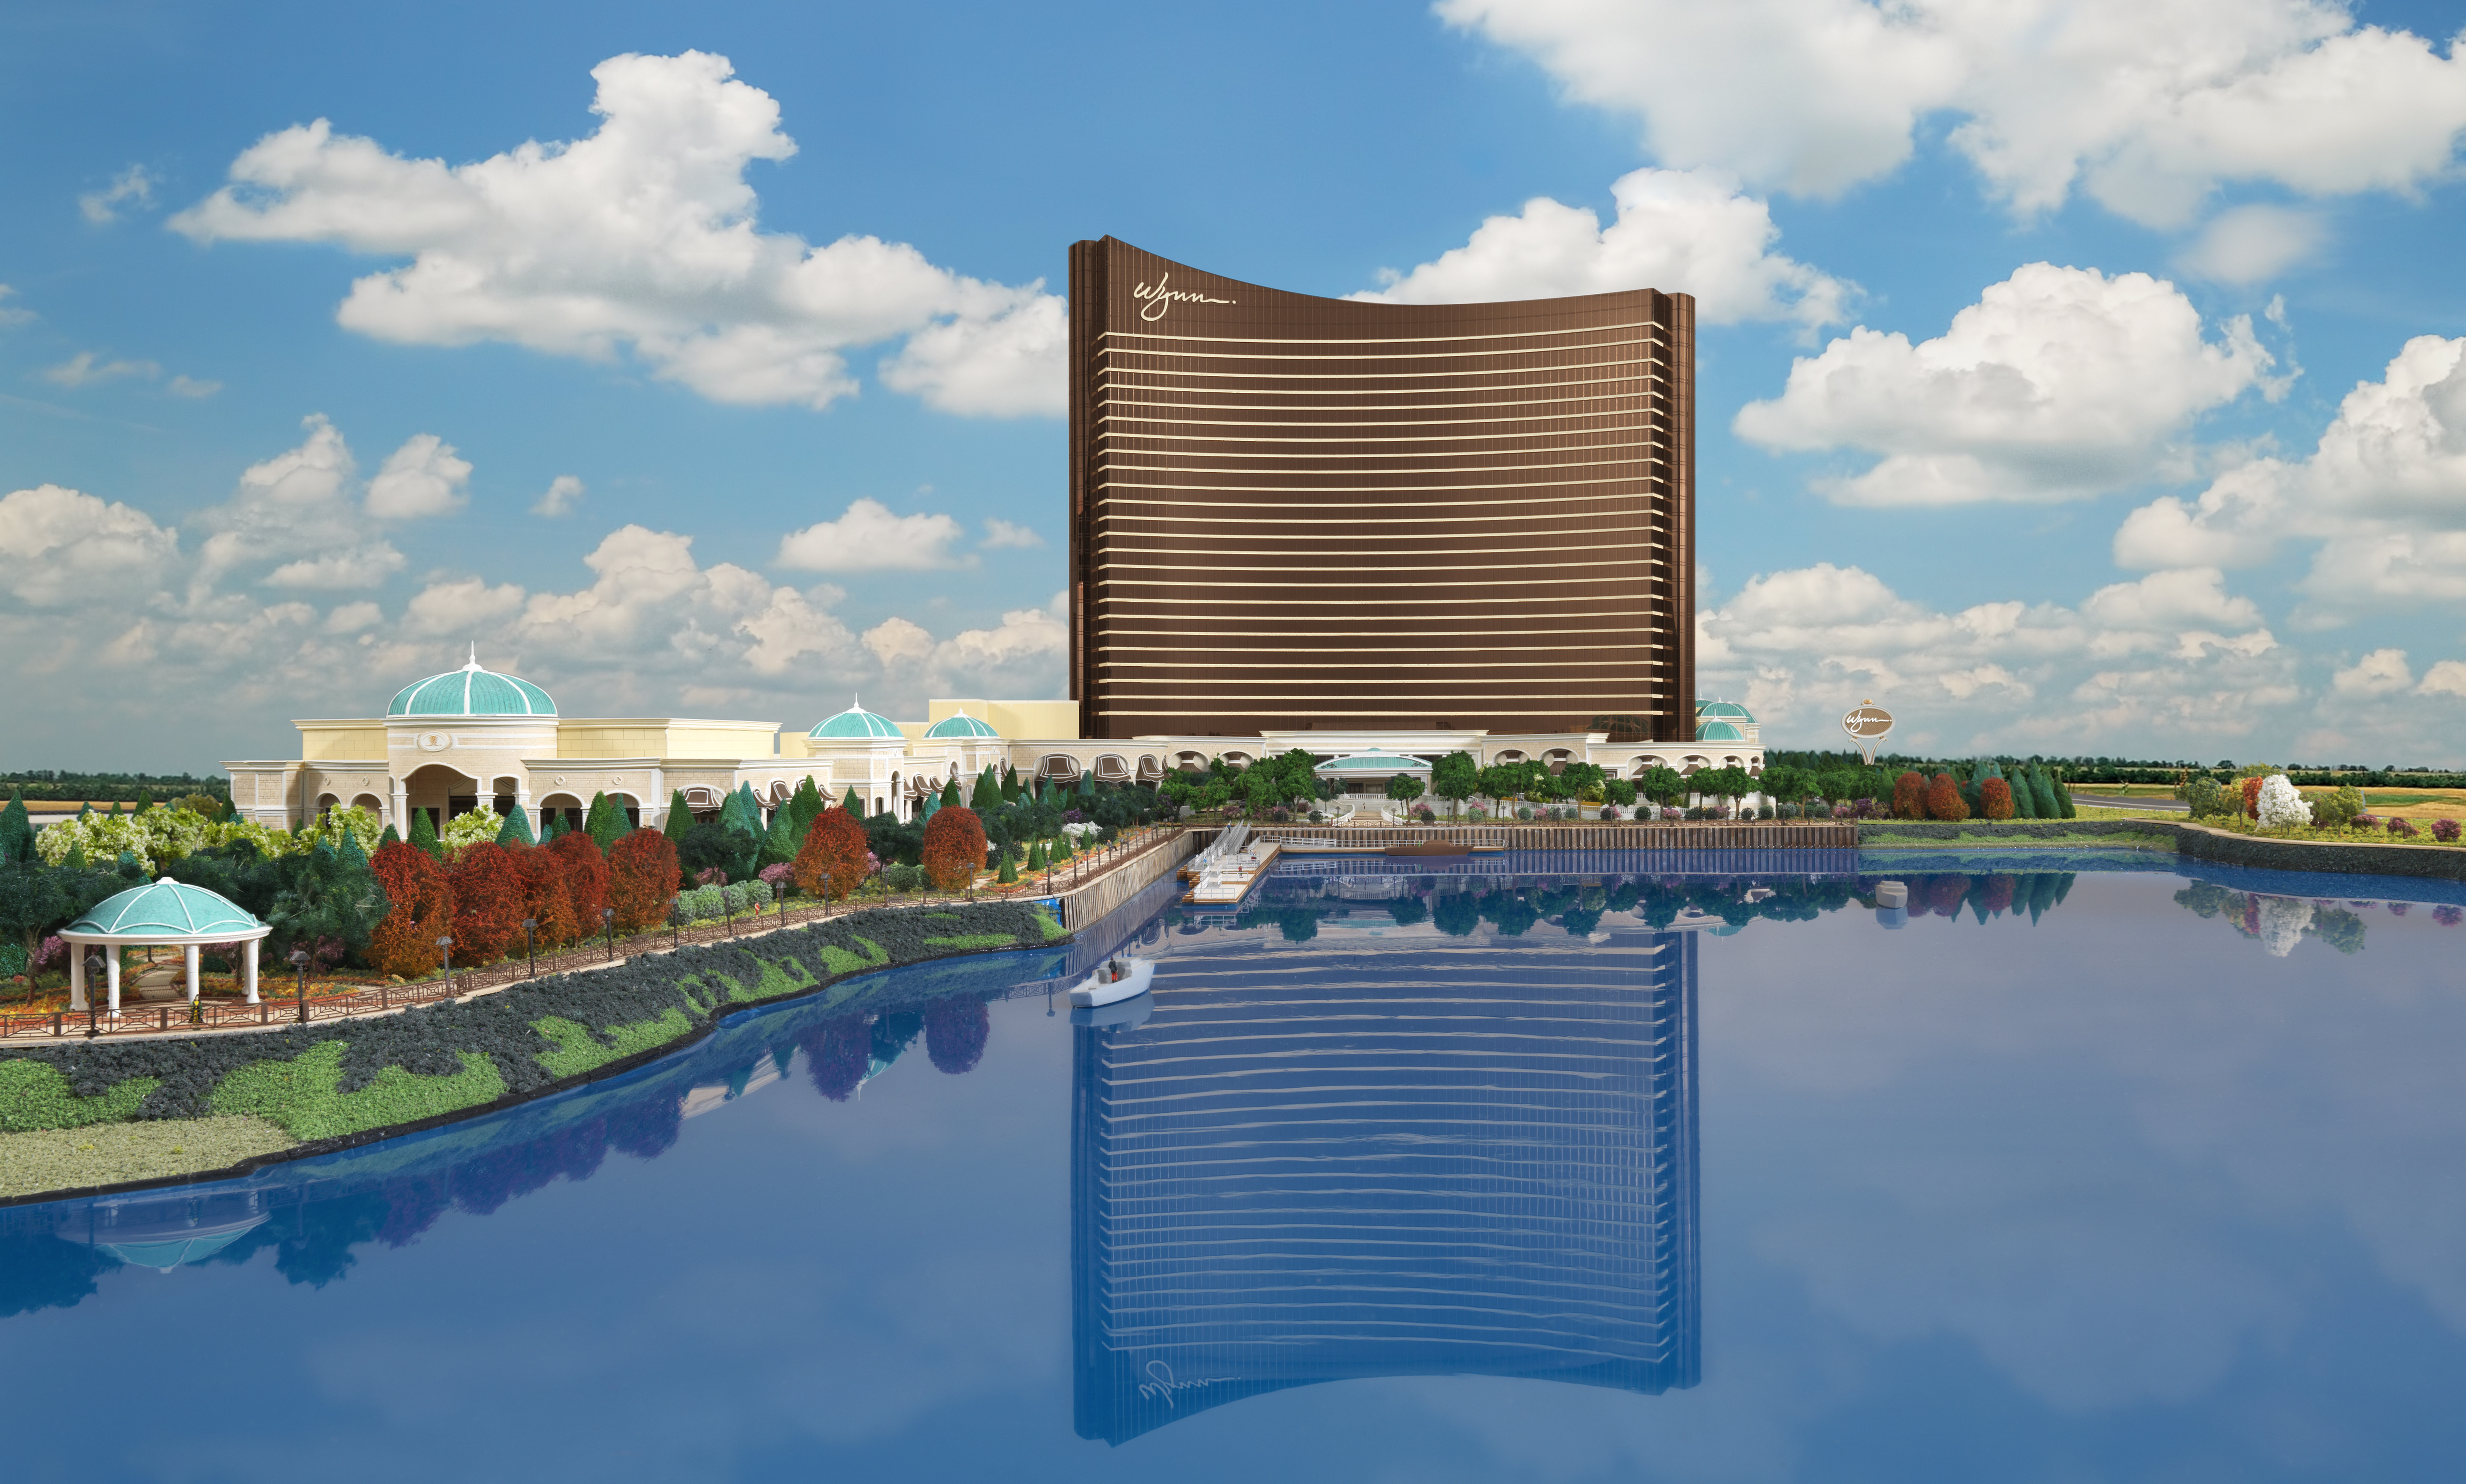 Wynn Resort and Casino